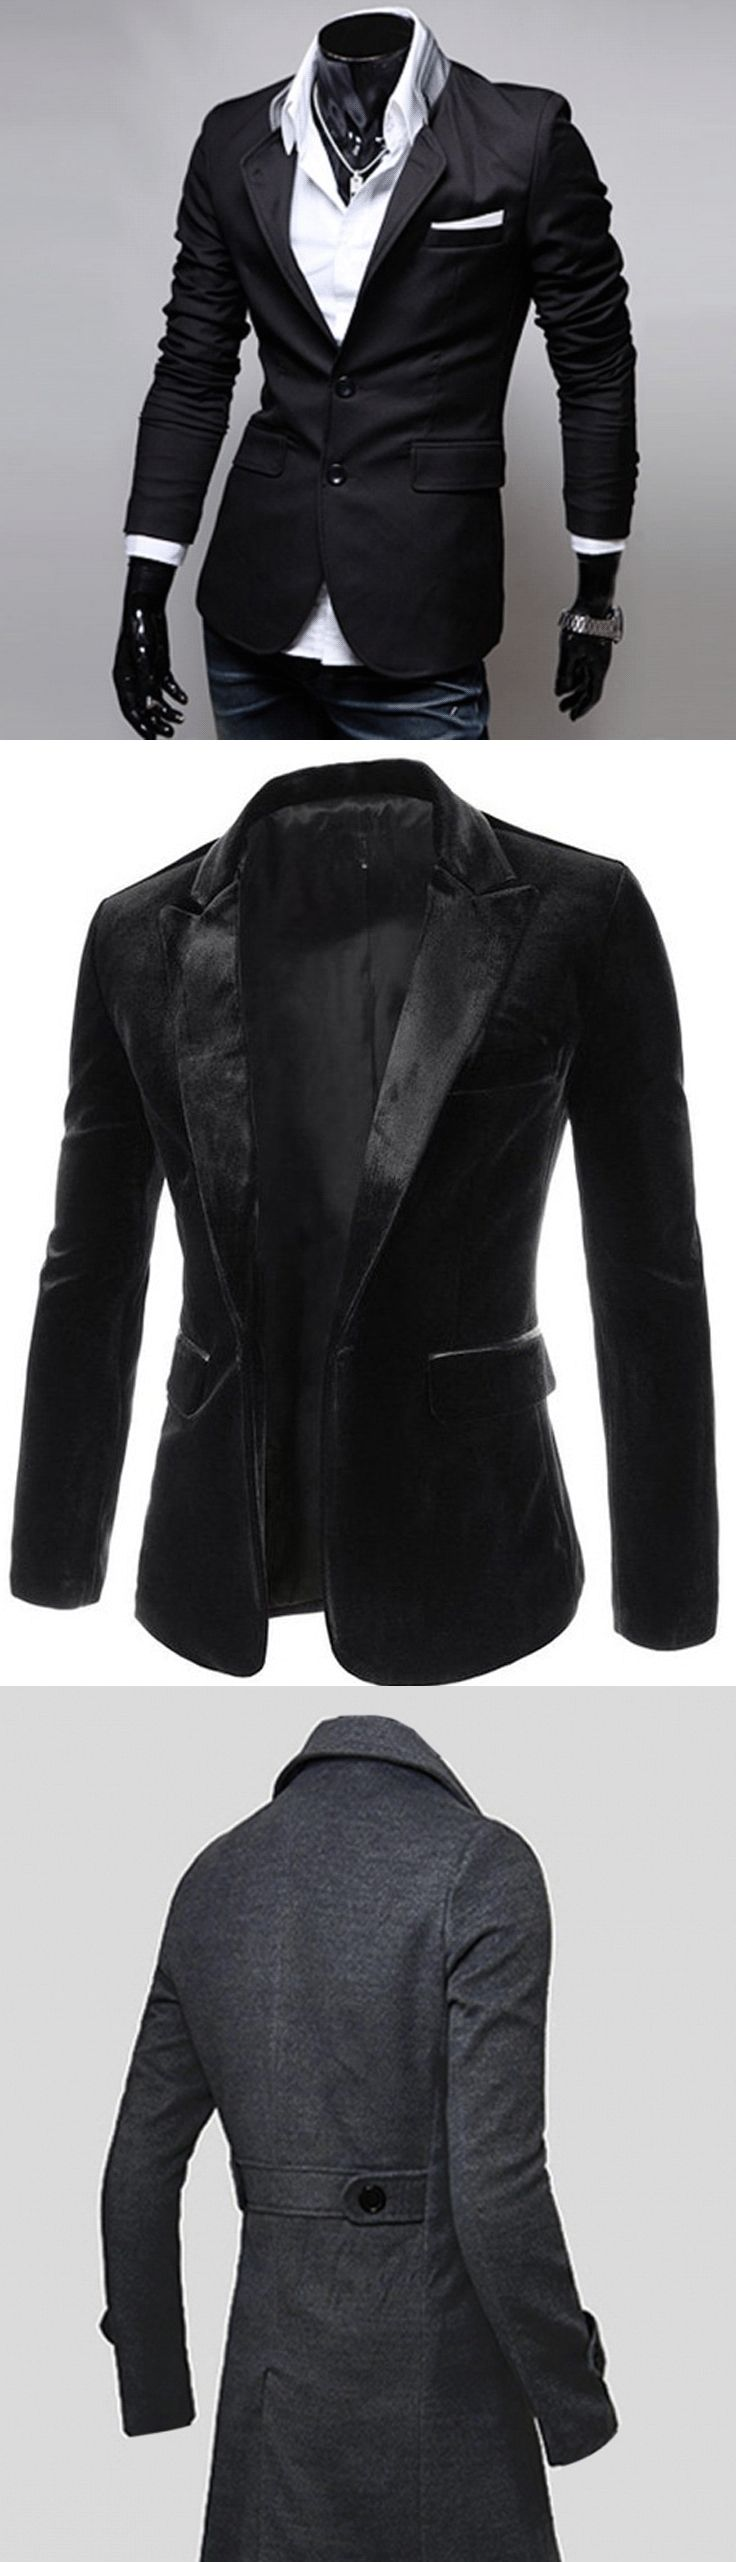 Shop street goth blazers and coats for men at RebelsMarket!